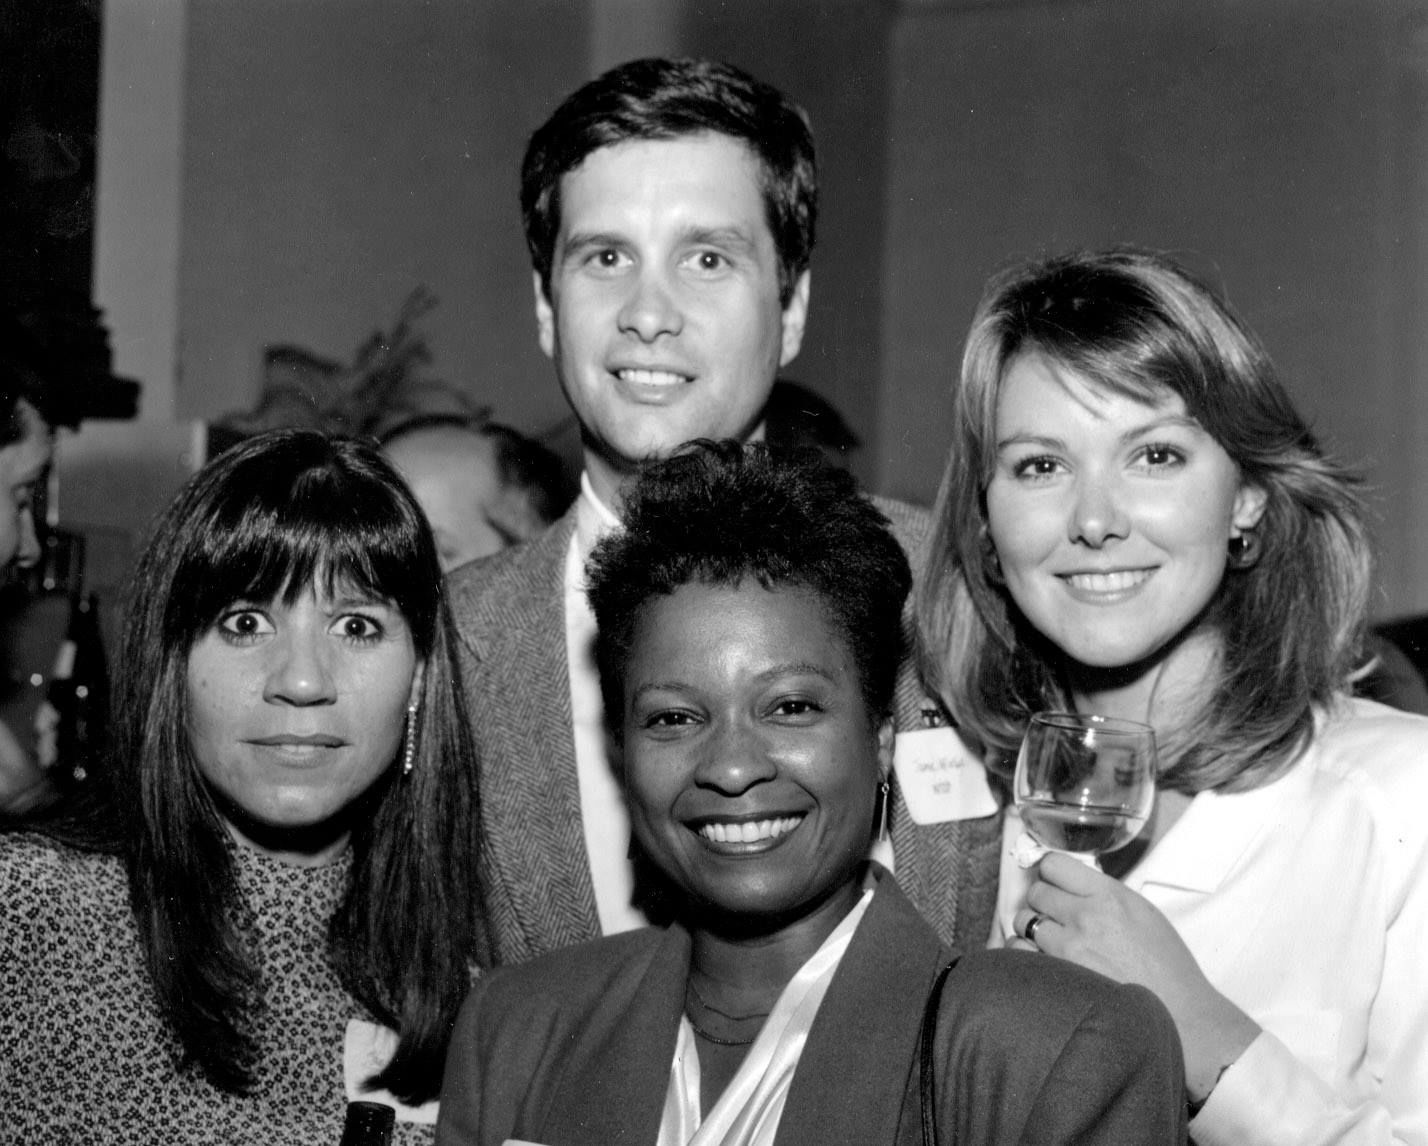 Staffers from the 1980s. Clockwise from top: Jamie McIntyre, Wendy Rieger, Janice Sosebee, ______. (Courtesy Jamie McIntyre)